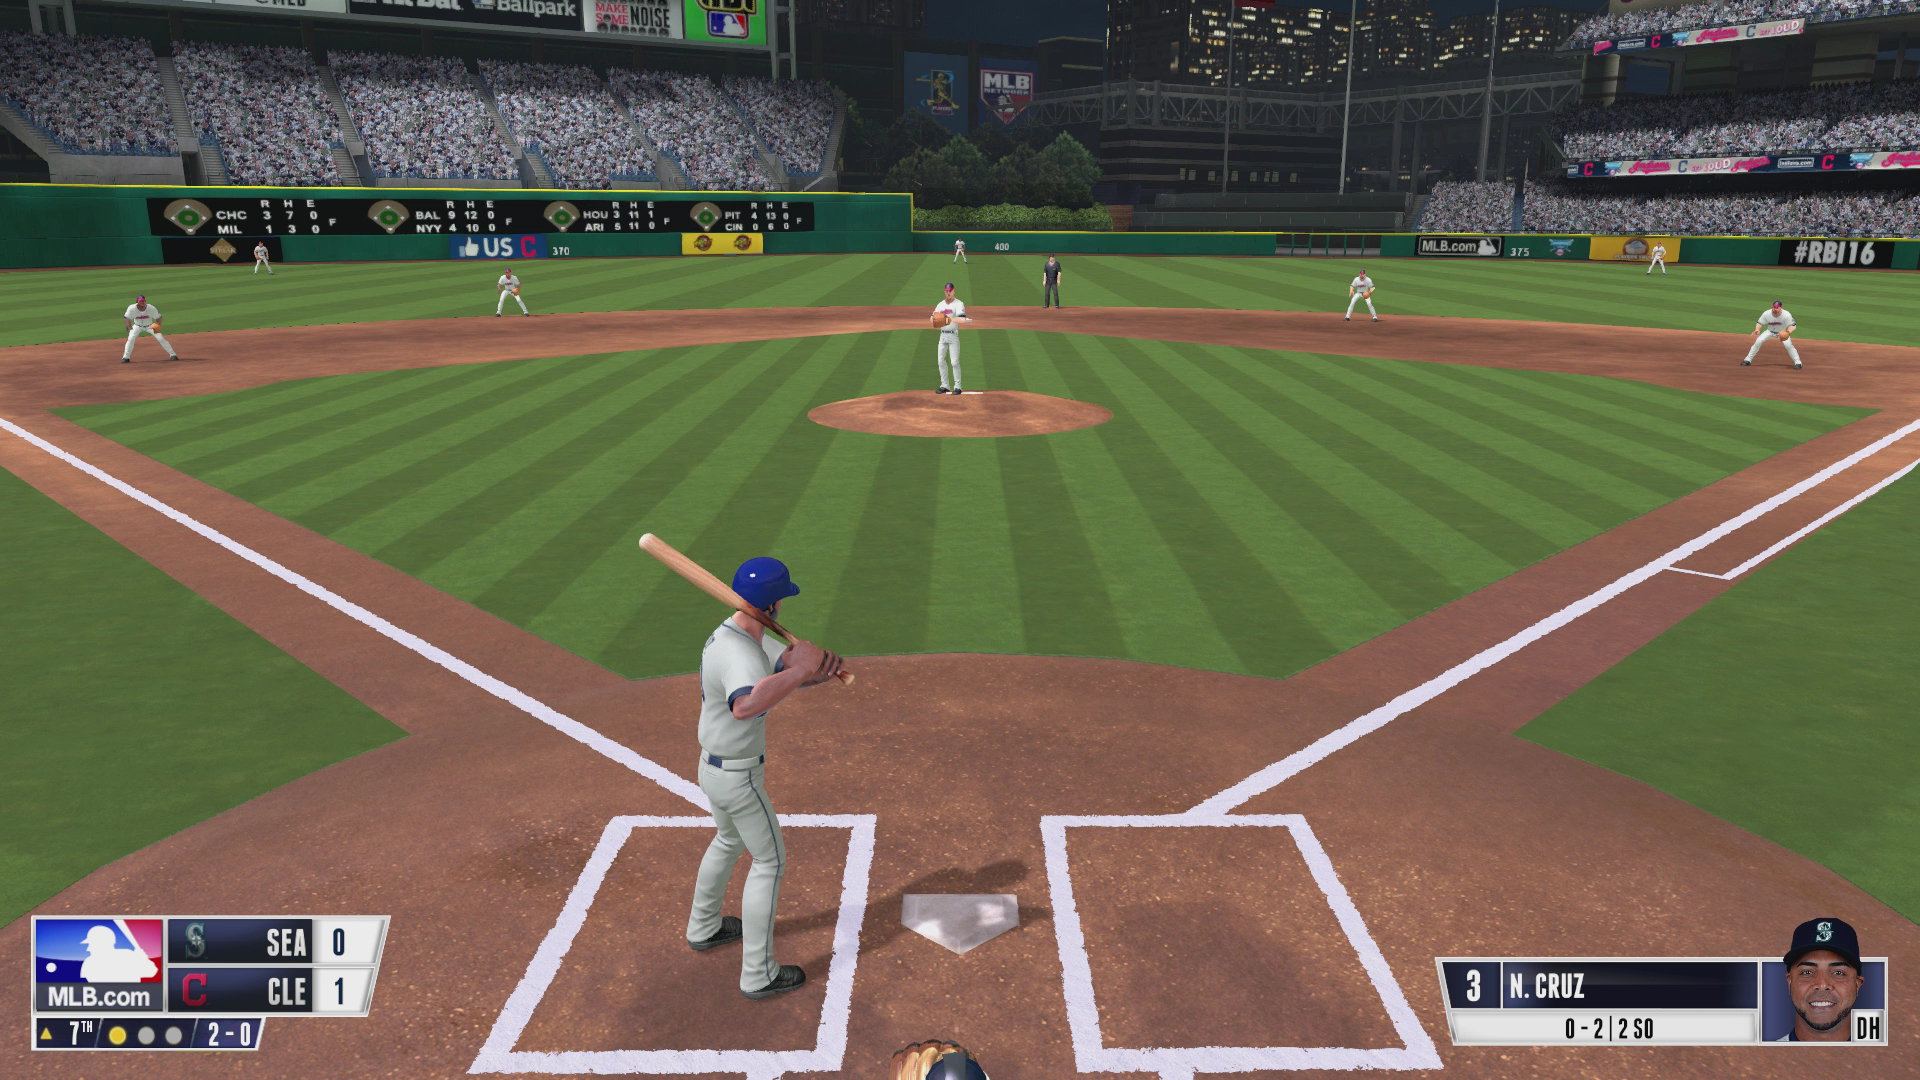 Review: RBI Baseball 16 uninspired, goes down looking ...